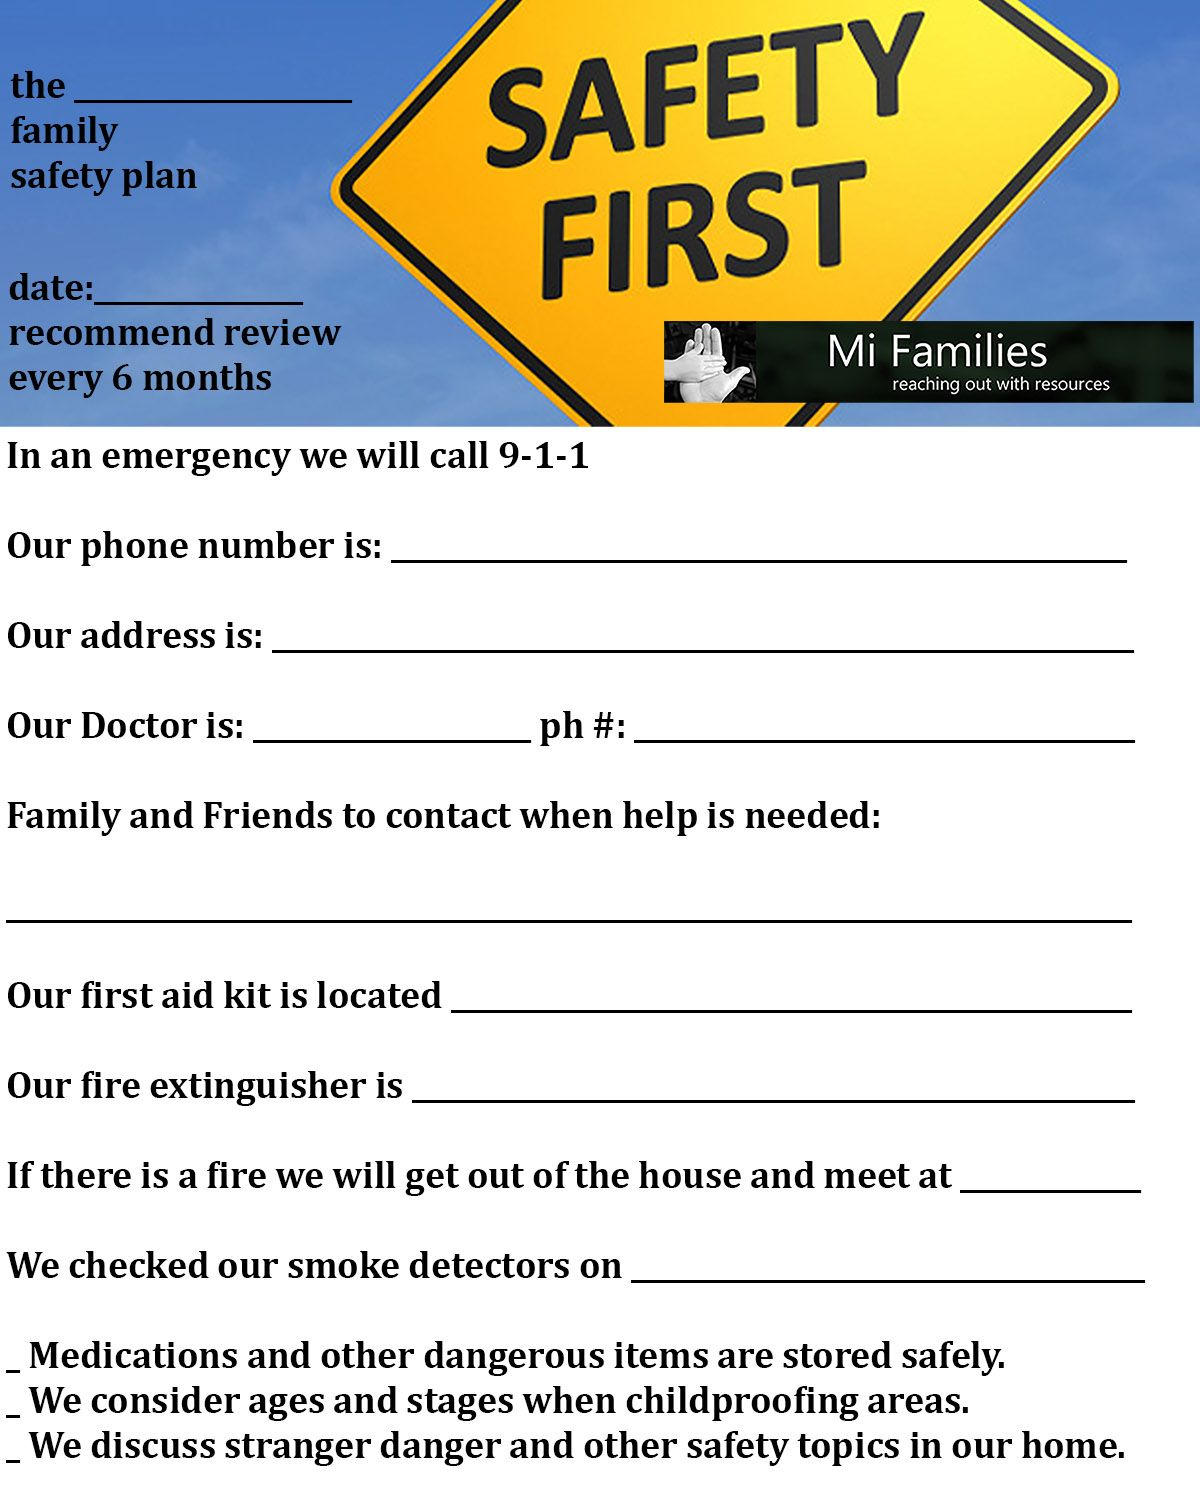 Worksheets First Aid Worksheets For Kids pictures first aid worksheet toribeedesign for kids worksheets photos toribeedesign